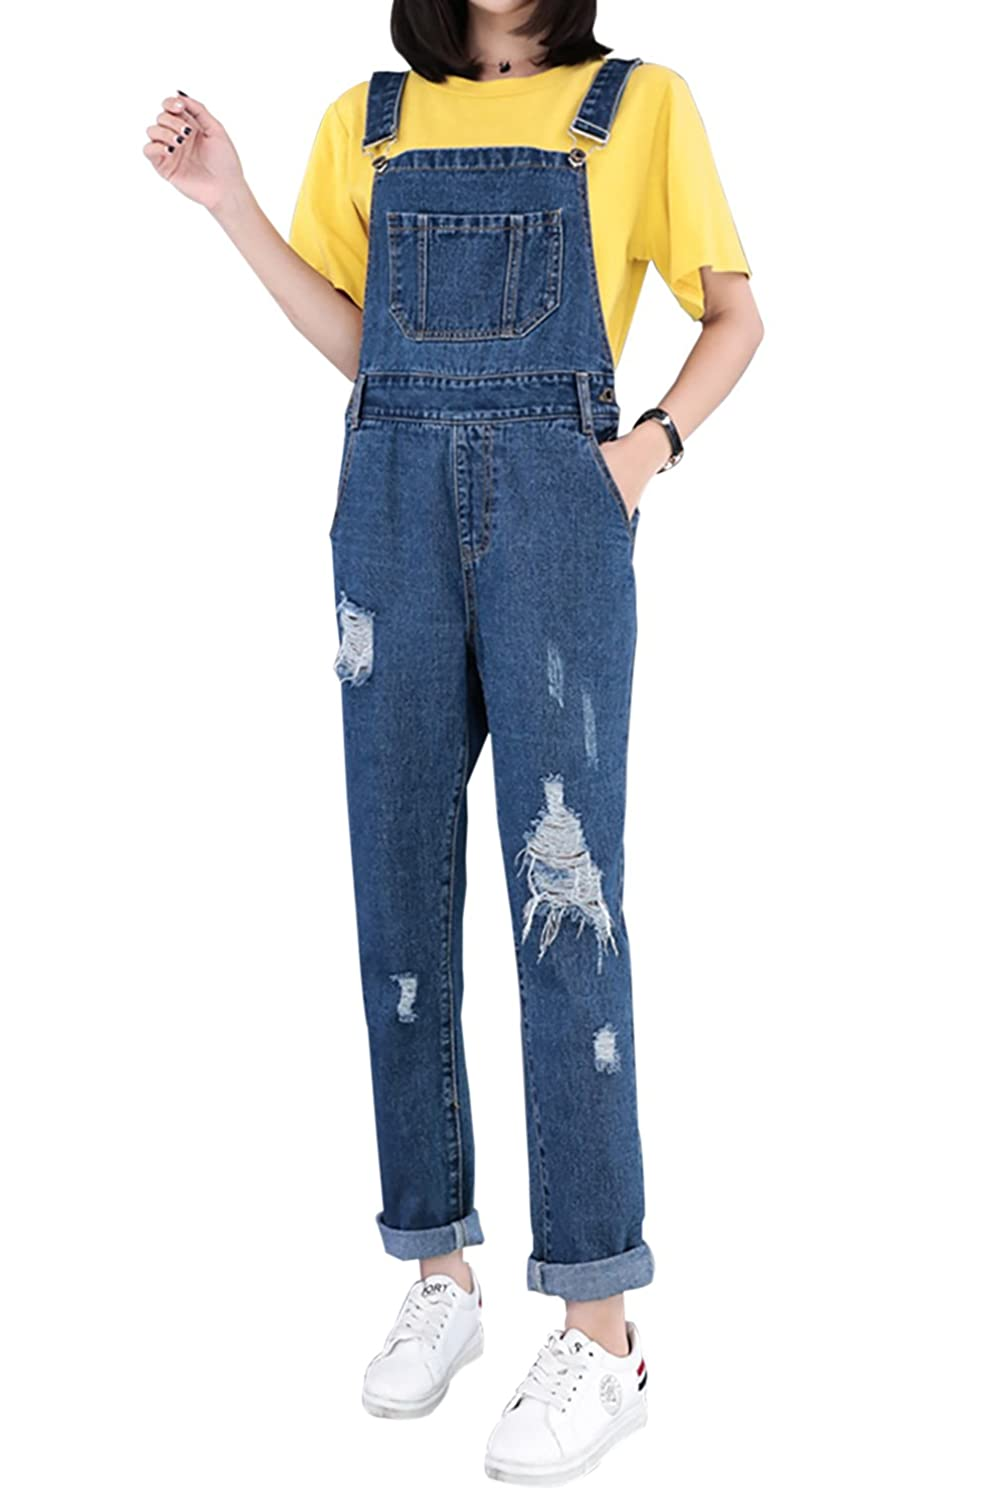 Yimoon Womens Stylish Loose Ripped Denim Overalls Jeans Pants